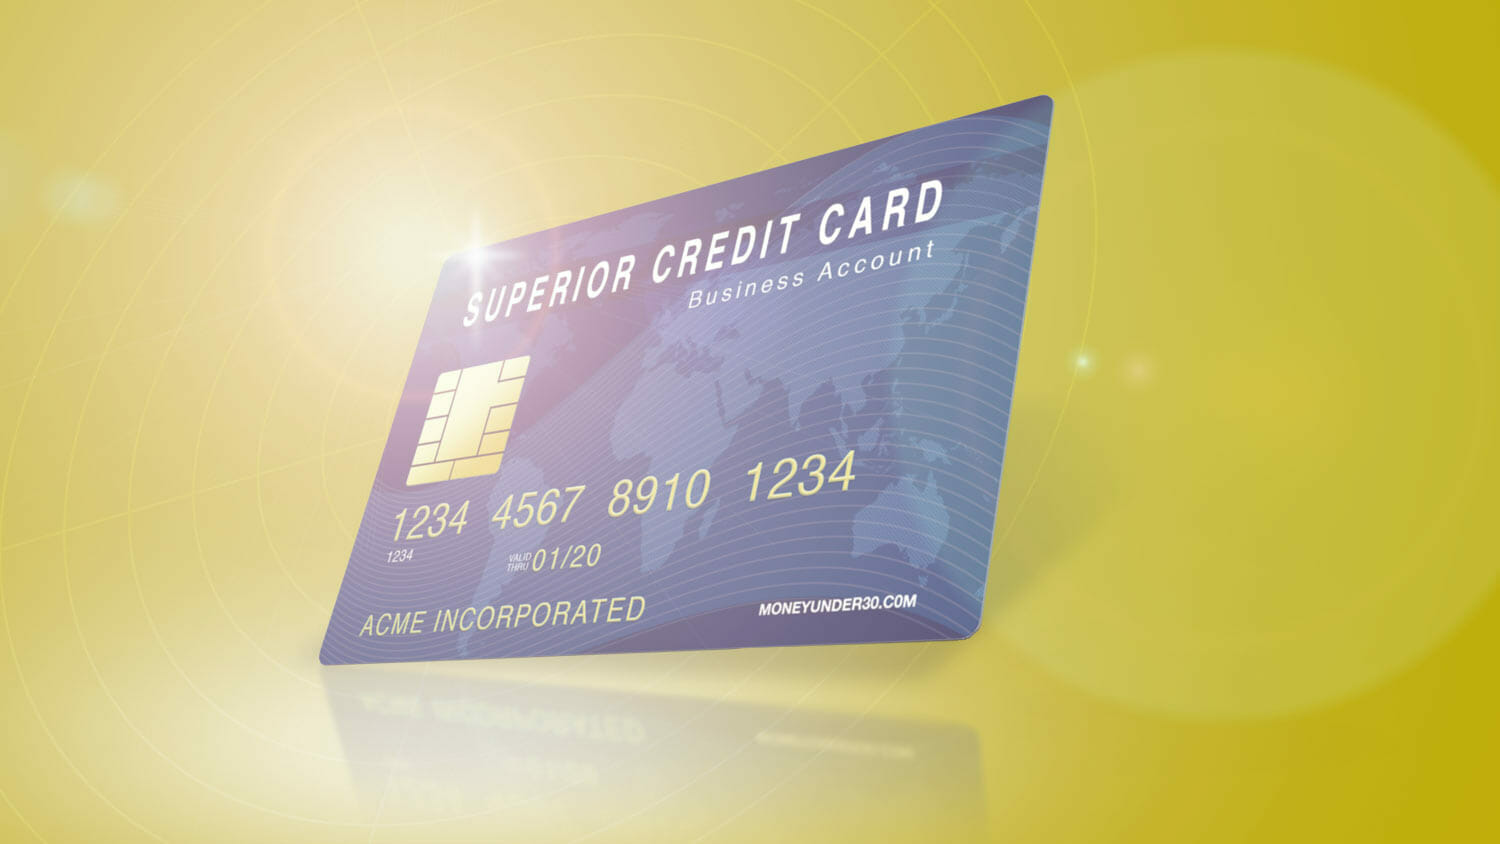 Best Credit Cards For Business Use Gallery - Free Business Cards